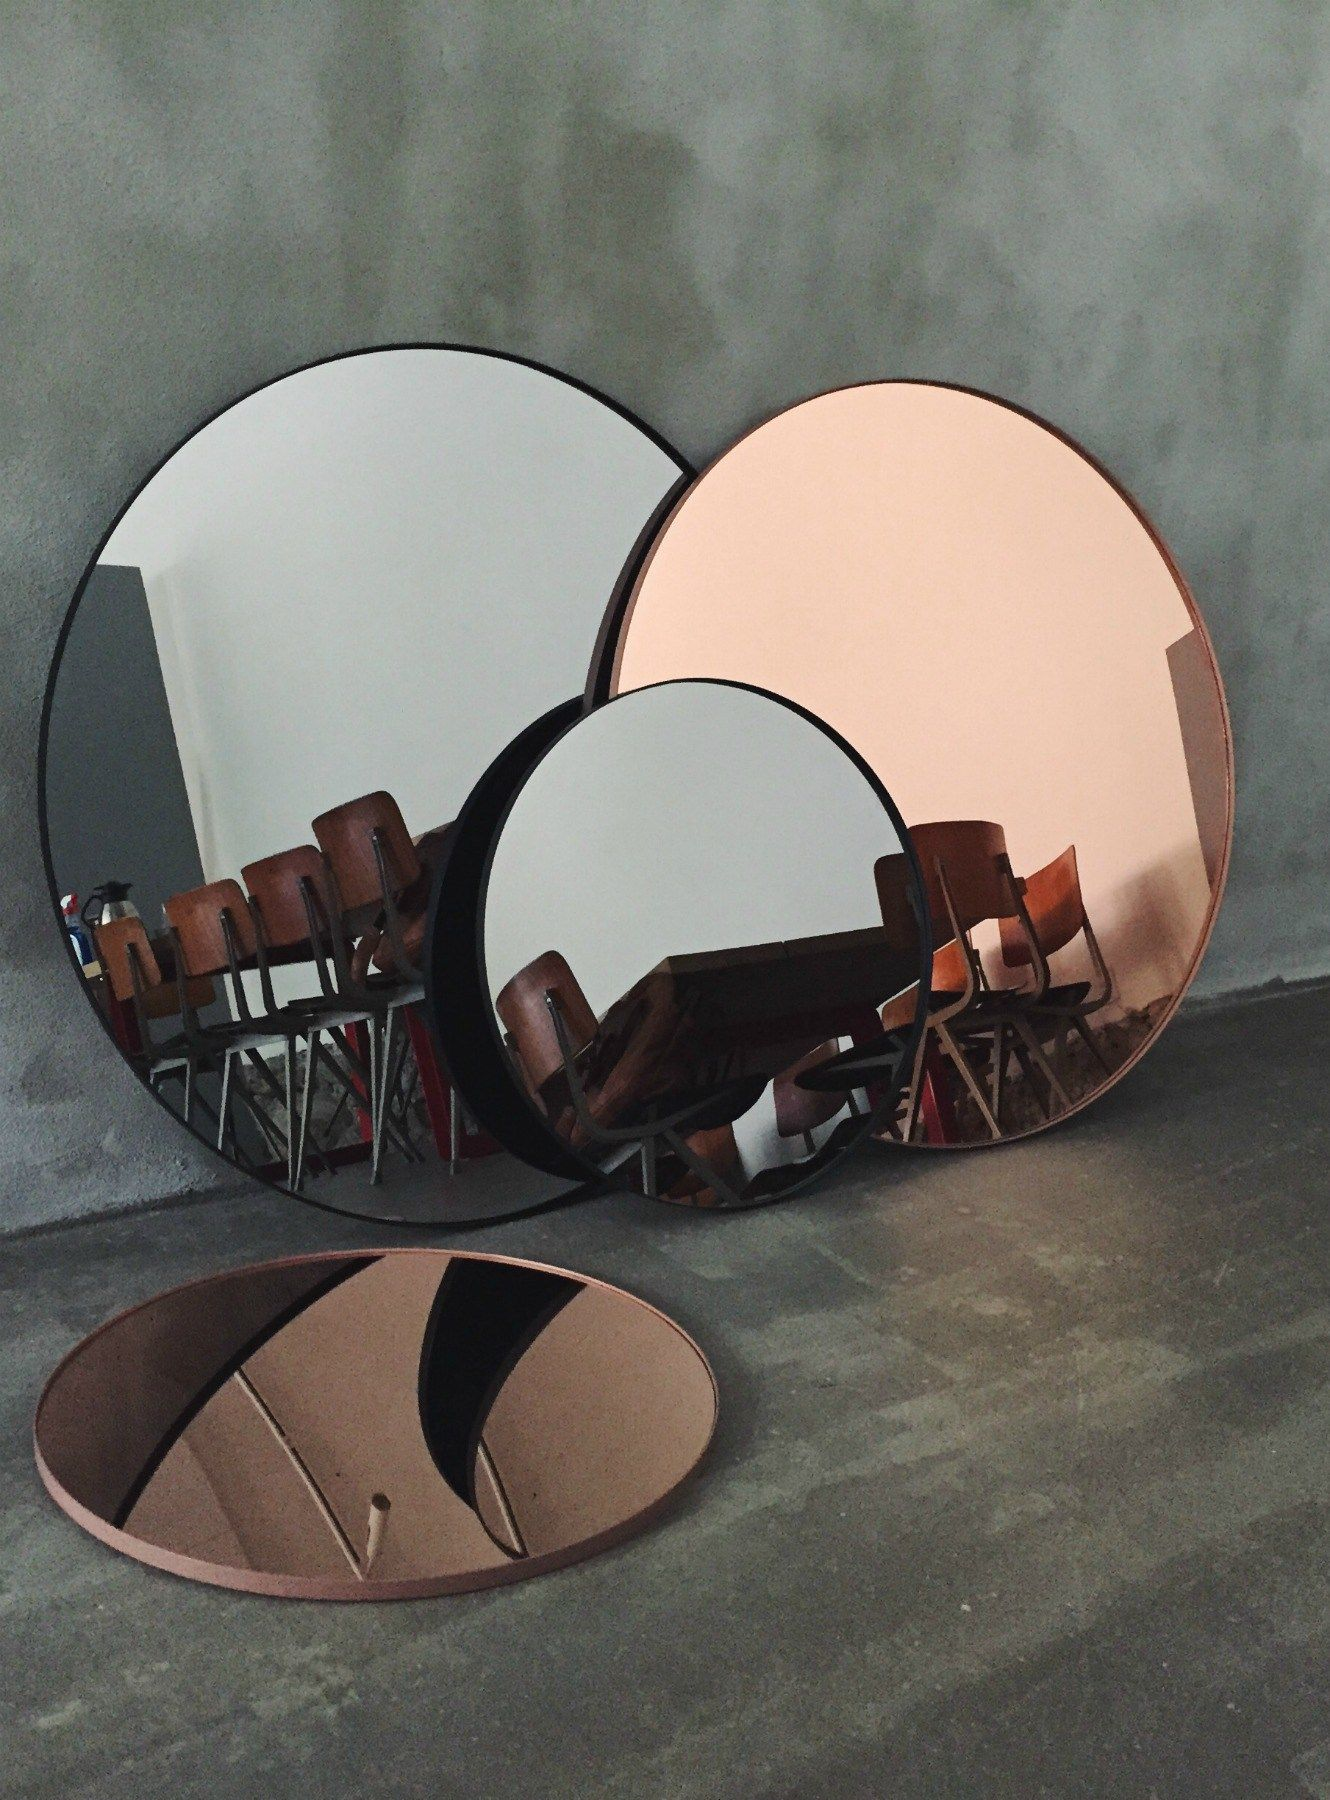 A Glamourous Touch To Your Home With Aytm With Images Tinted Mirror Copper And Grey Mirror Decor